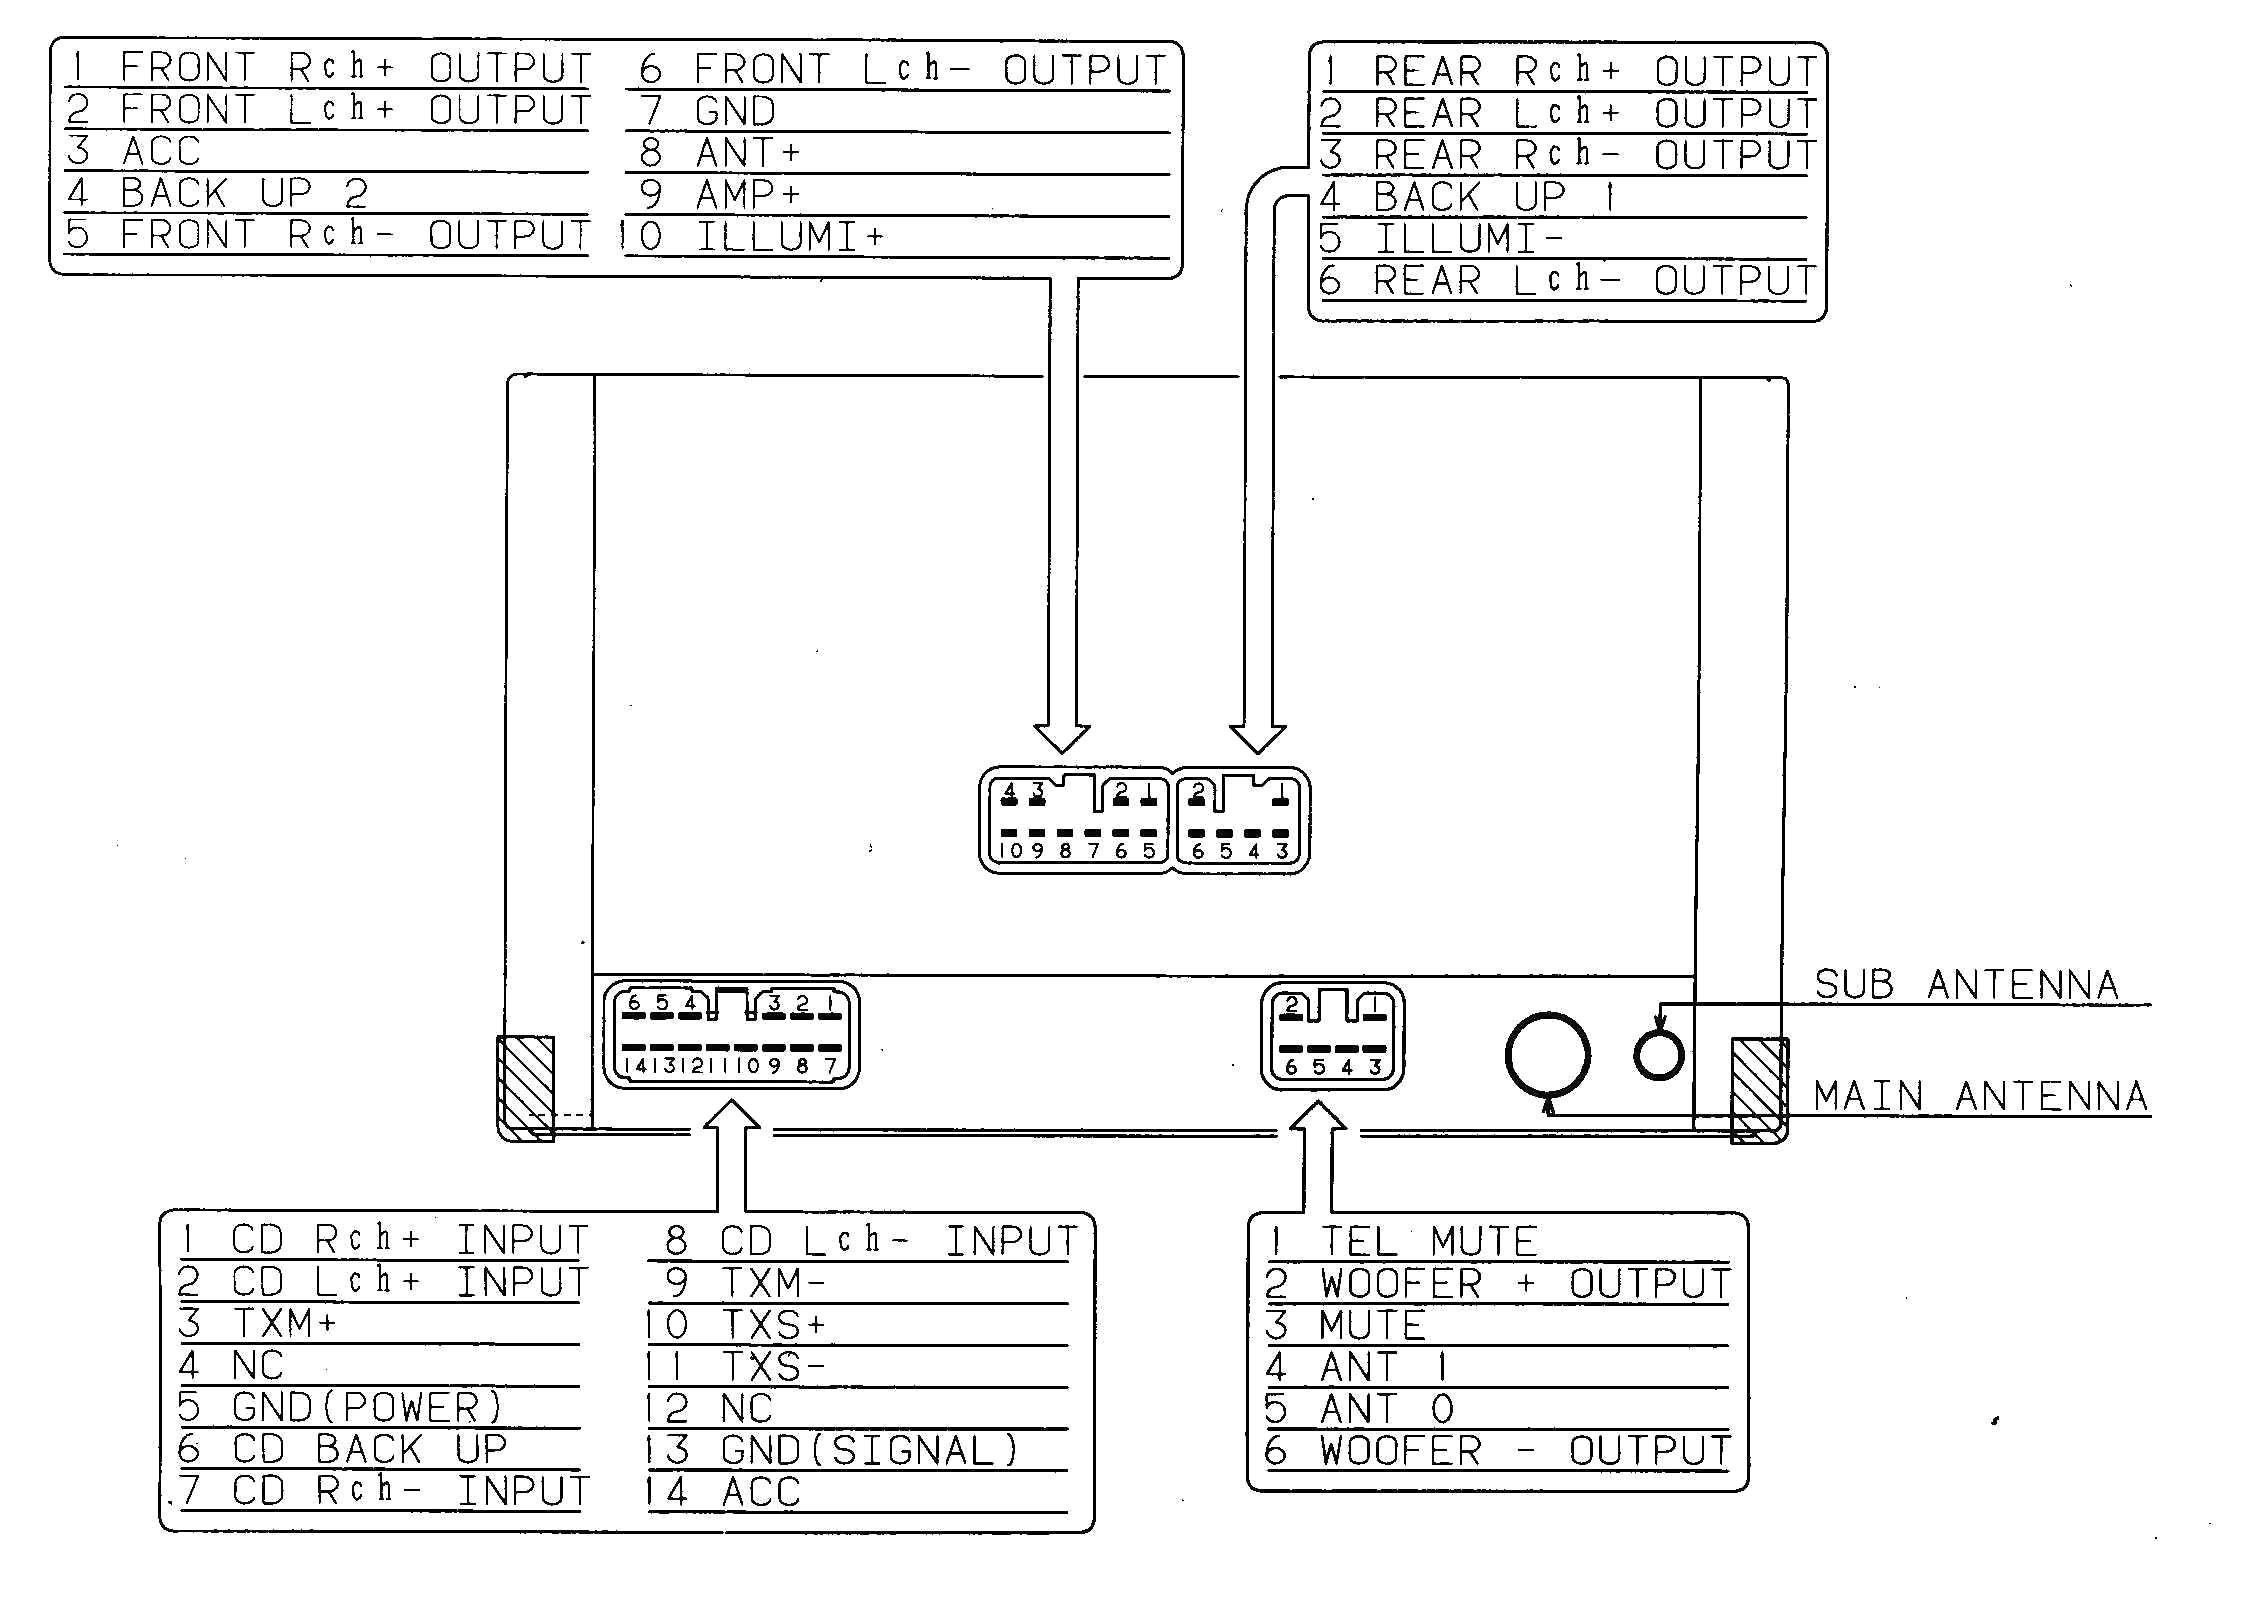 unique wiring diagram avic n1 car dvd player diagram pioneer avic-n1 cpn 1899 wiring diagram avic n1 wiring diagram #3